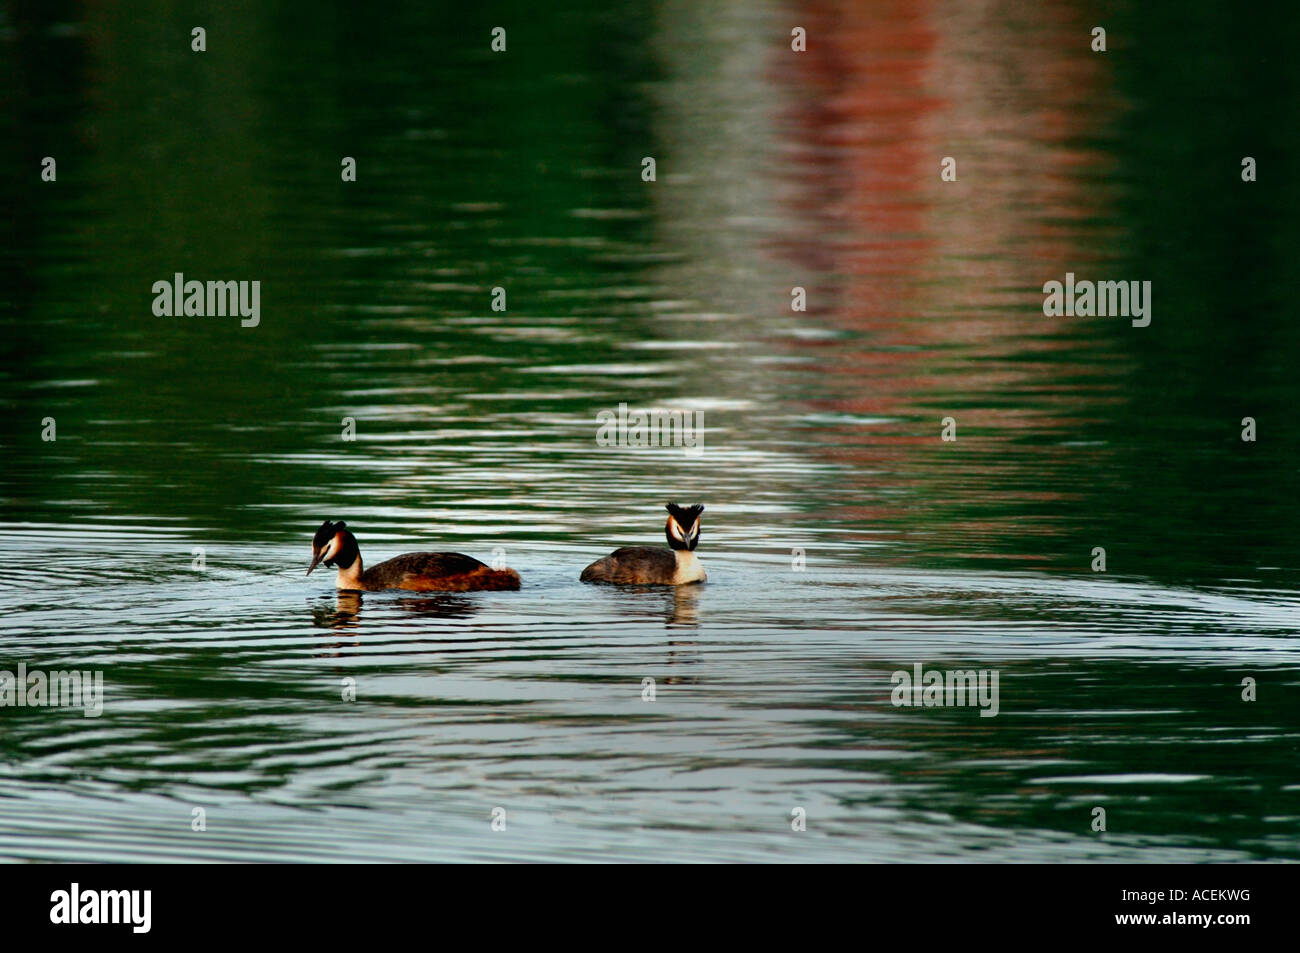 A Pair Of Great Crested Grebes.(Podiceps cristatus). - Stock Image